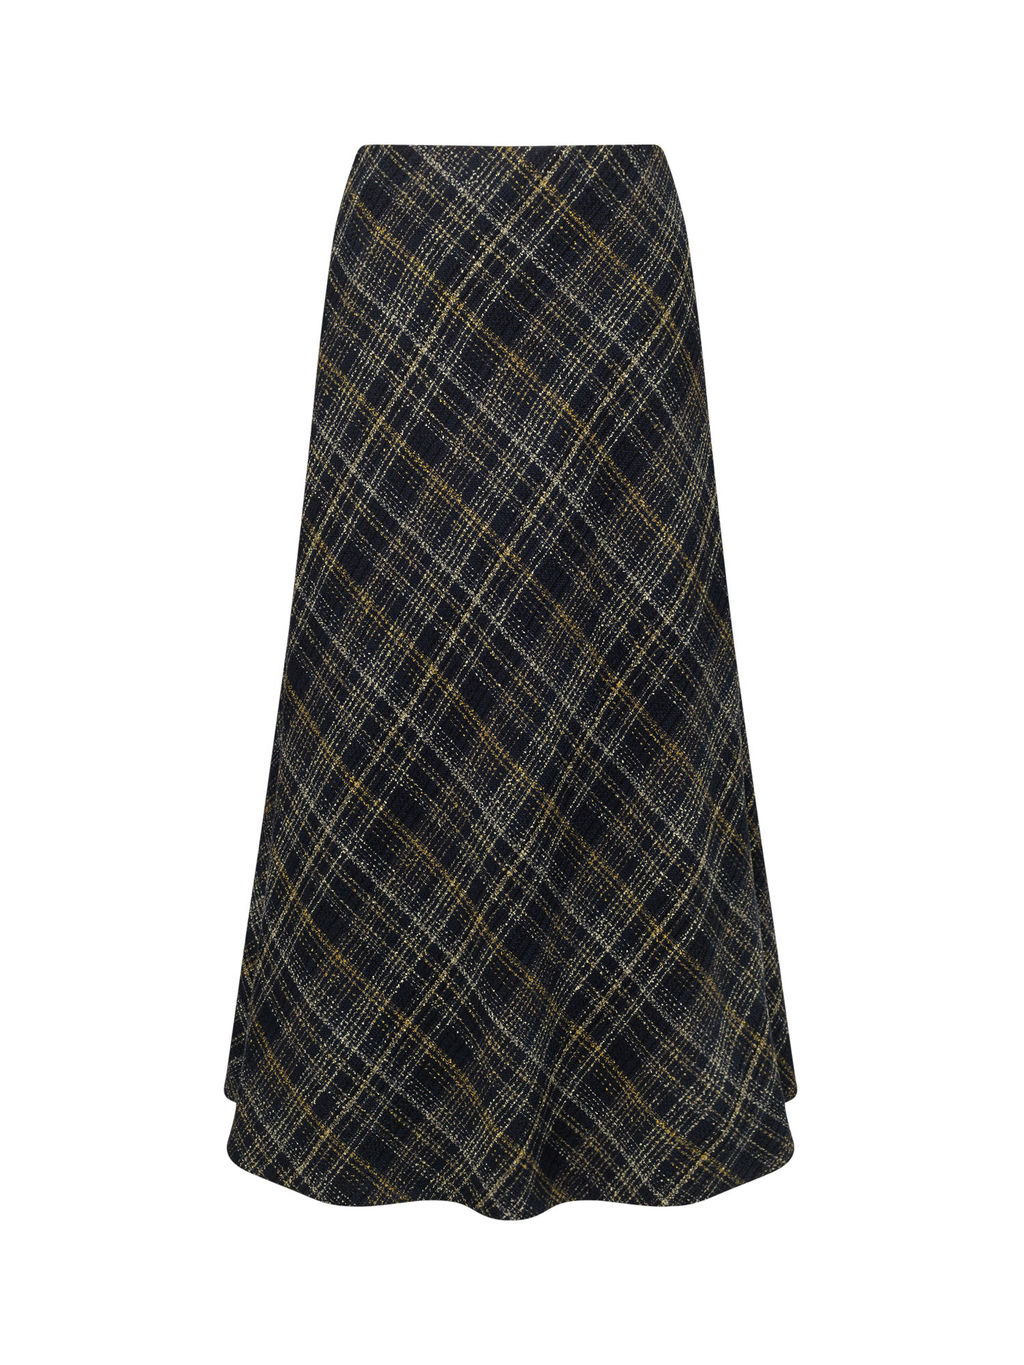 Bias Cut Tweed Skirt - length: calf length; pattern: checked/gingham; fit: loose/voluminous; waist: mid/regular rise; secondary colour: yellow; predominant colour: black; occasions: work, creative work; style: a-line; fibres: acrylic - mix; pattern type: fabric; texture group: woven light midweight; pattern size: standard (bottom); multicoloured: multicoloured; season: a/w 2016